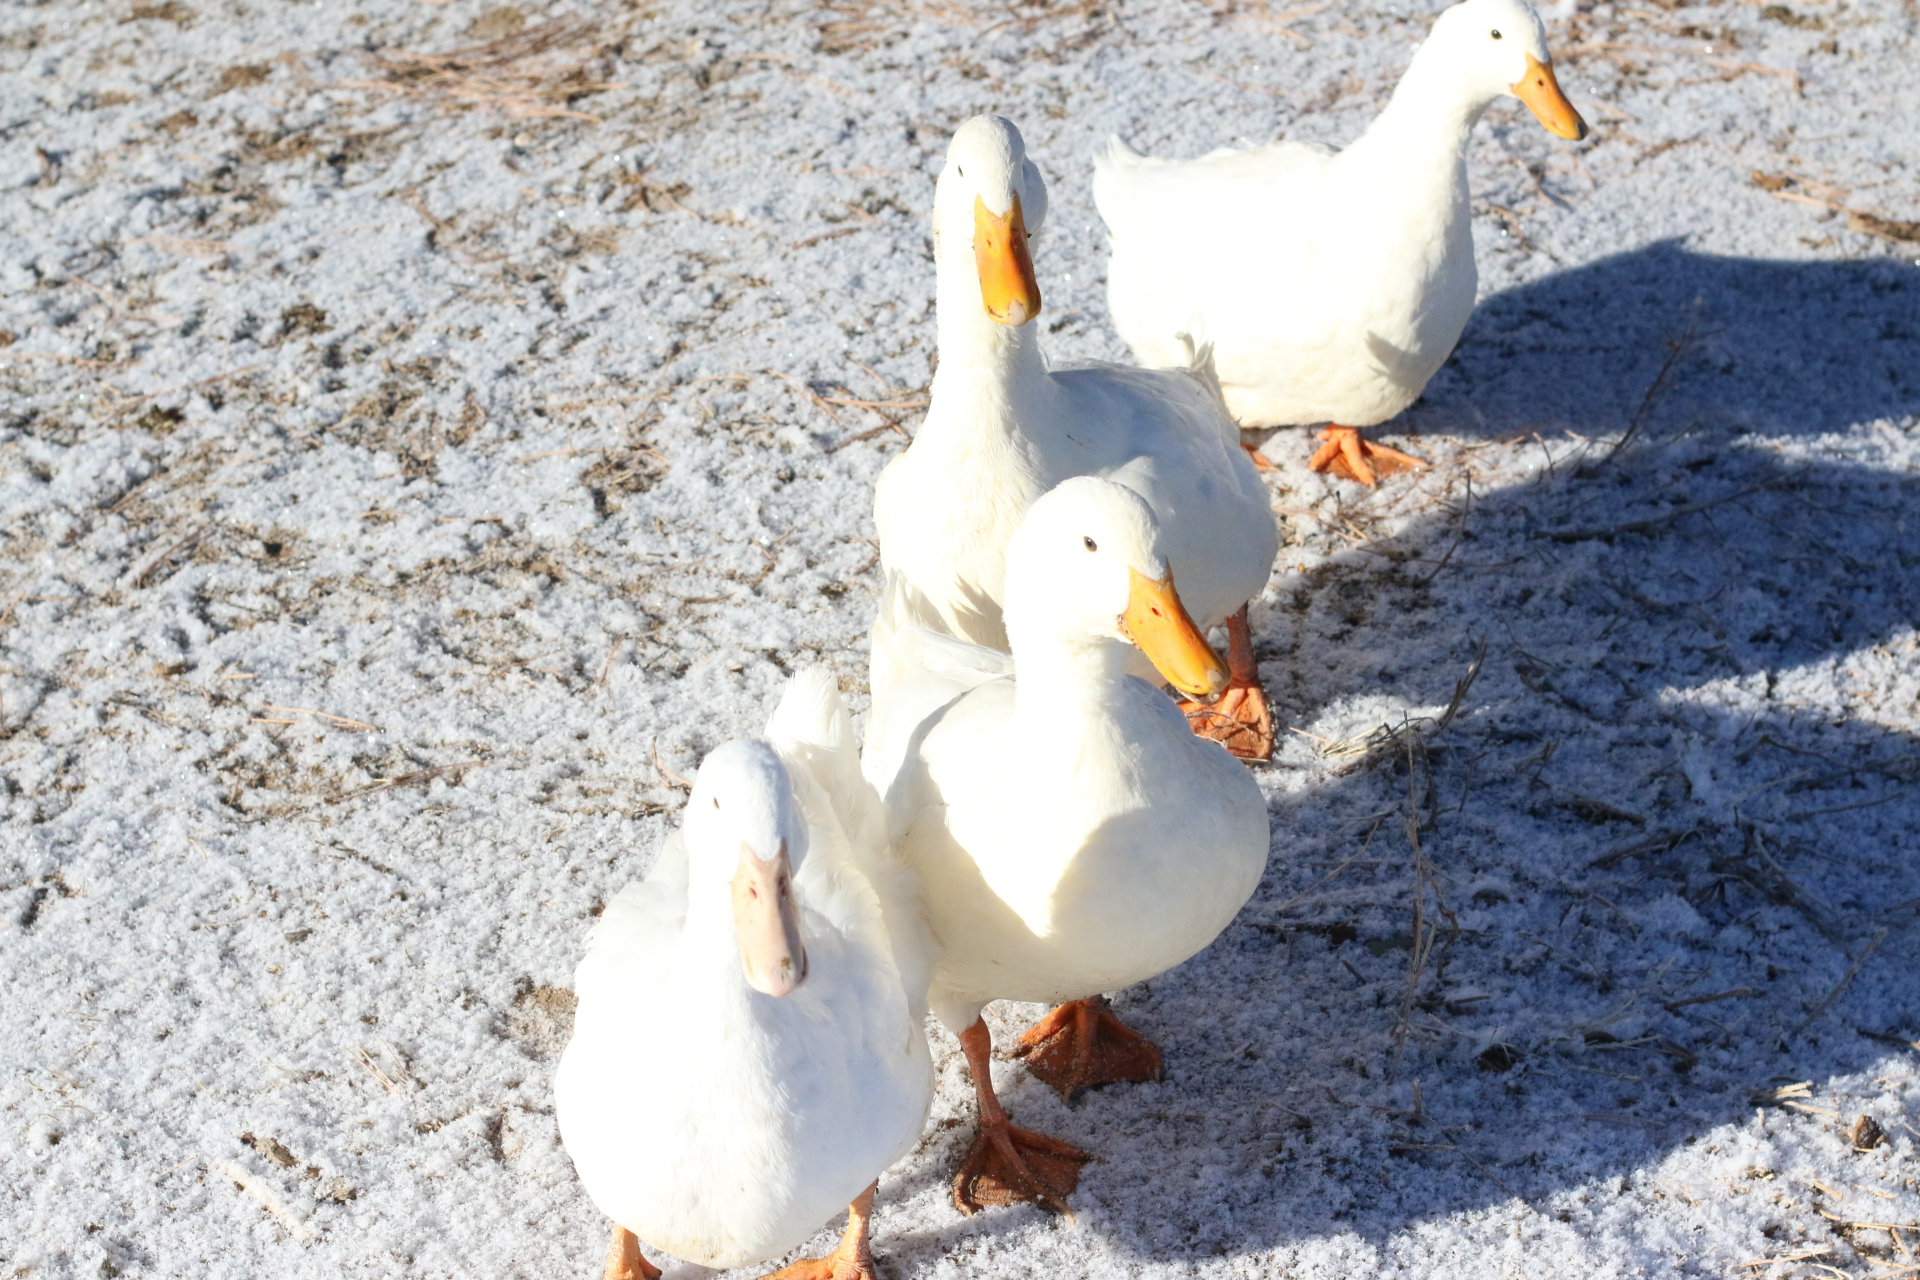 4 Farm Ducks--Pepper and Salt(Winter 2015) Huey and Duey(Spring 2015)